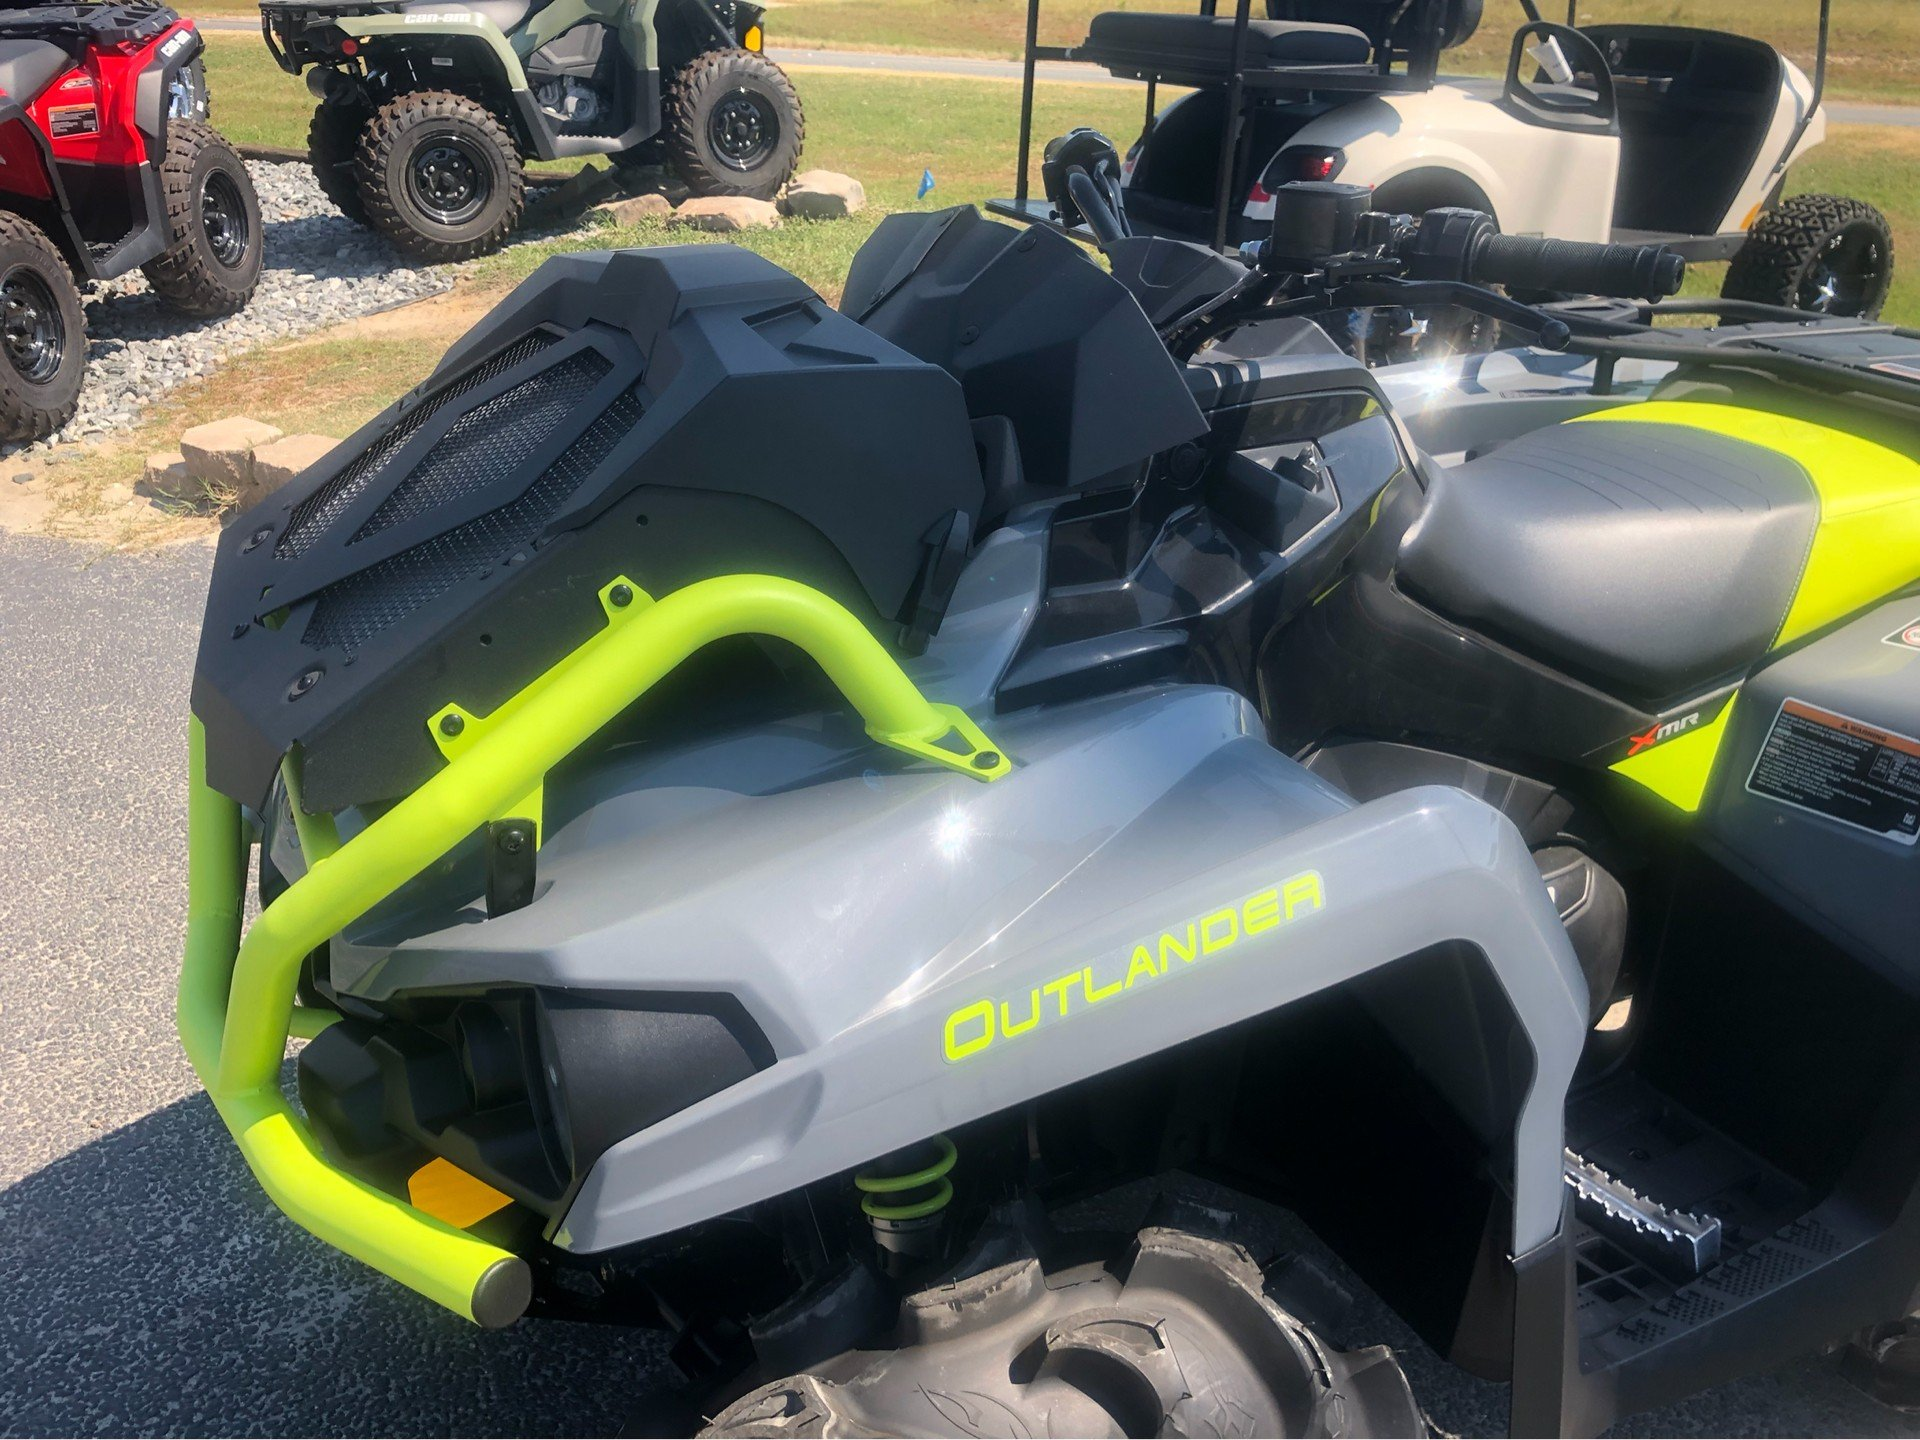 2020 Can-Am Outlander X MR 570 in Douglas, Georgia - Photo 3